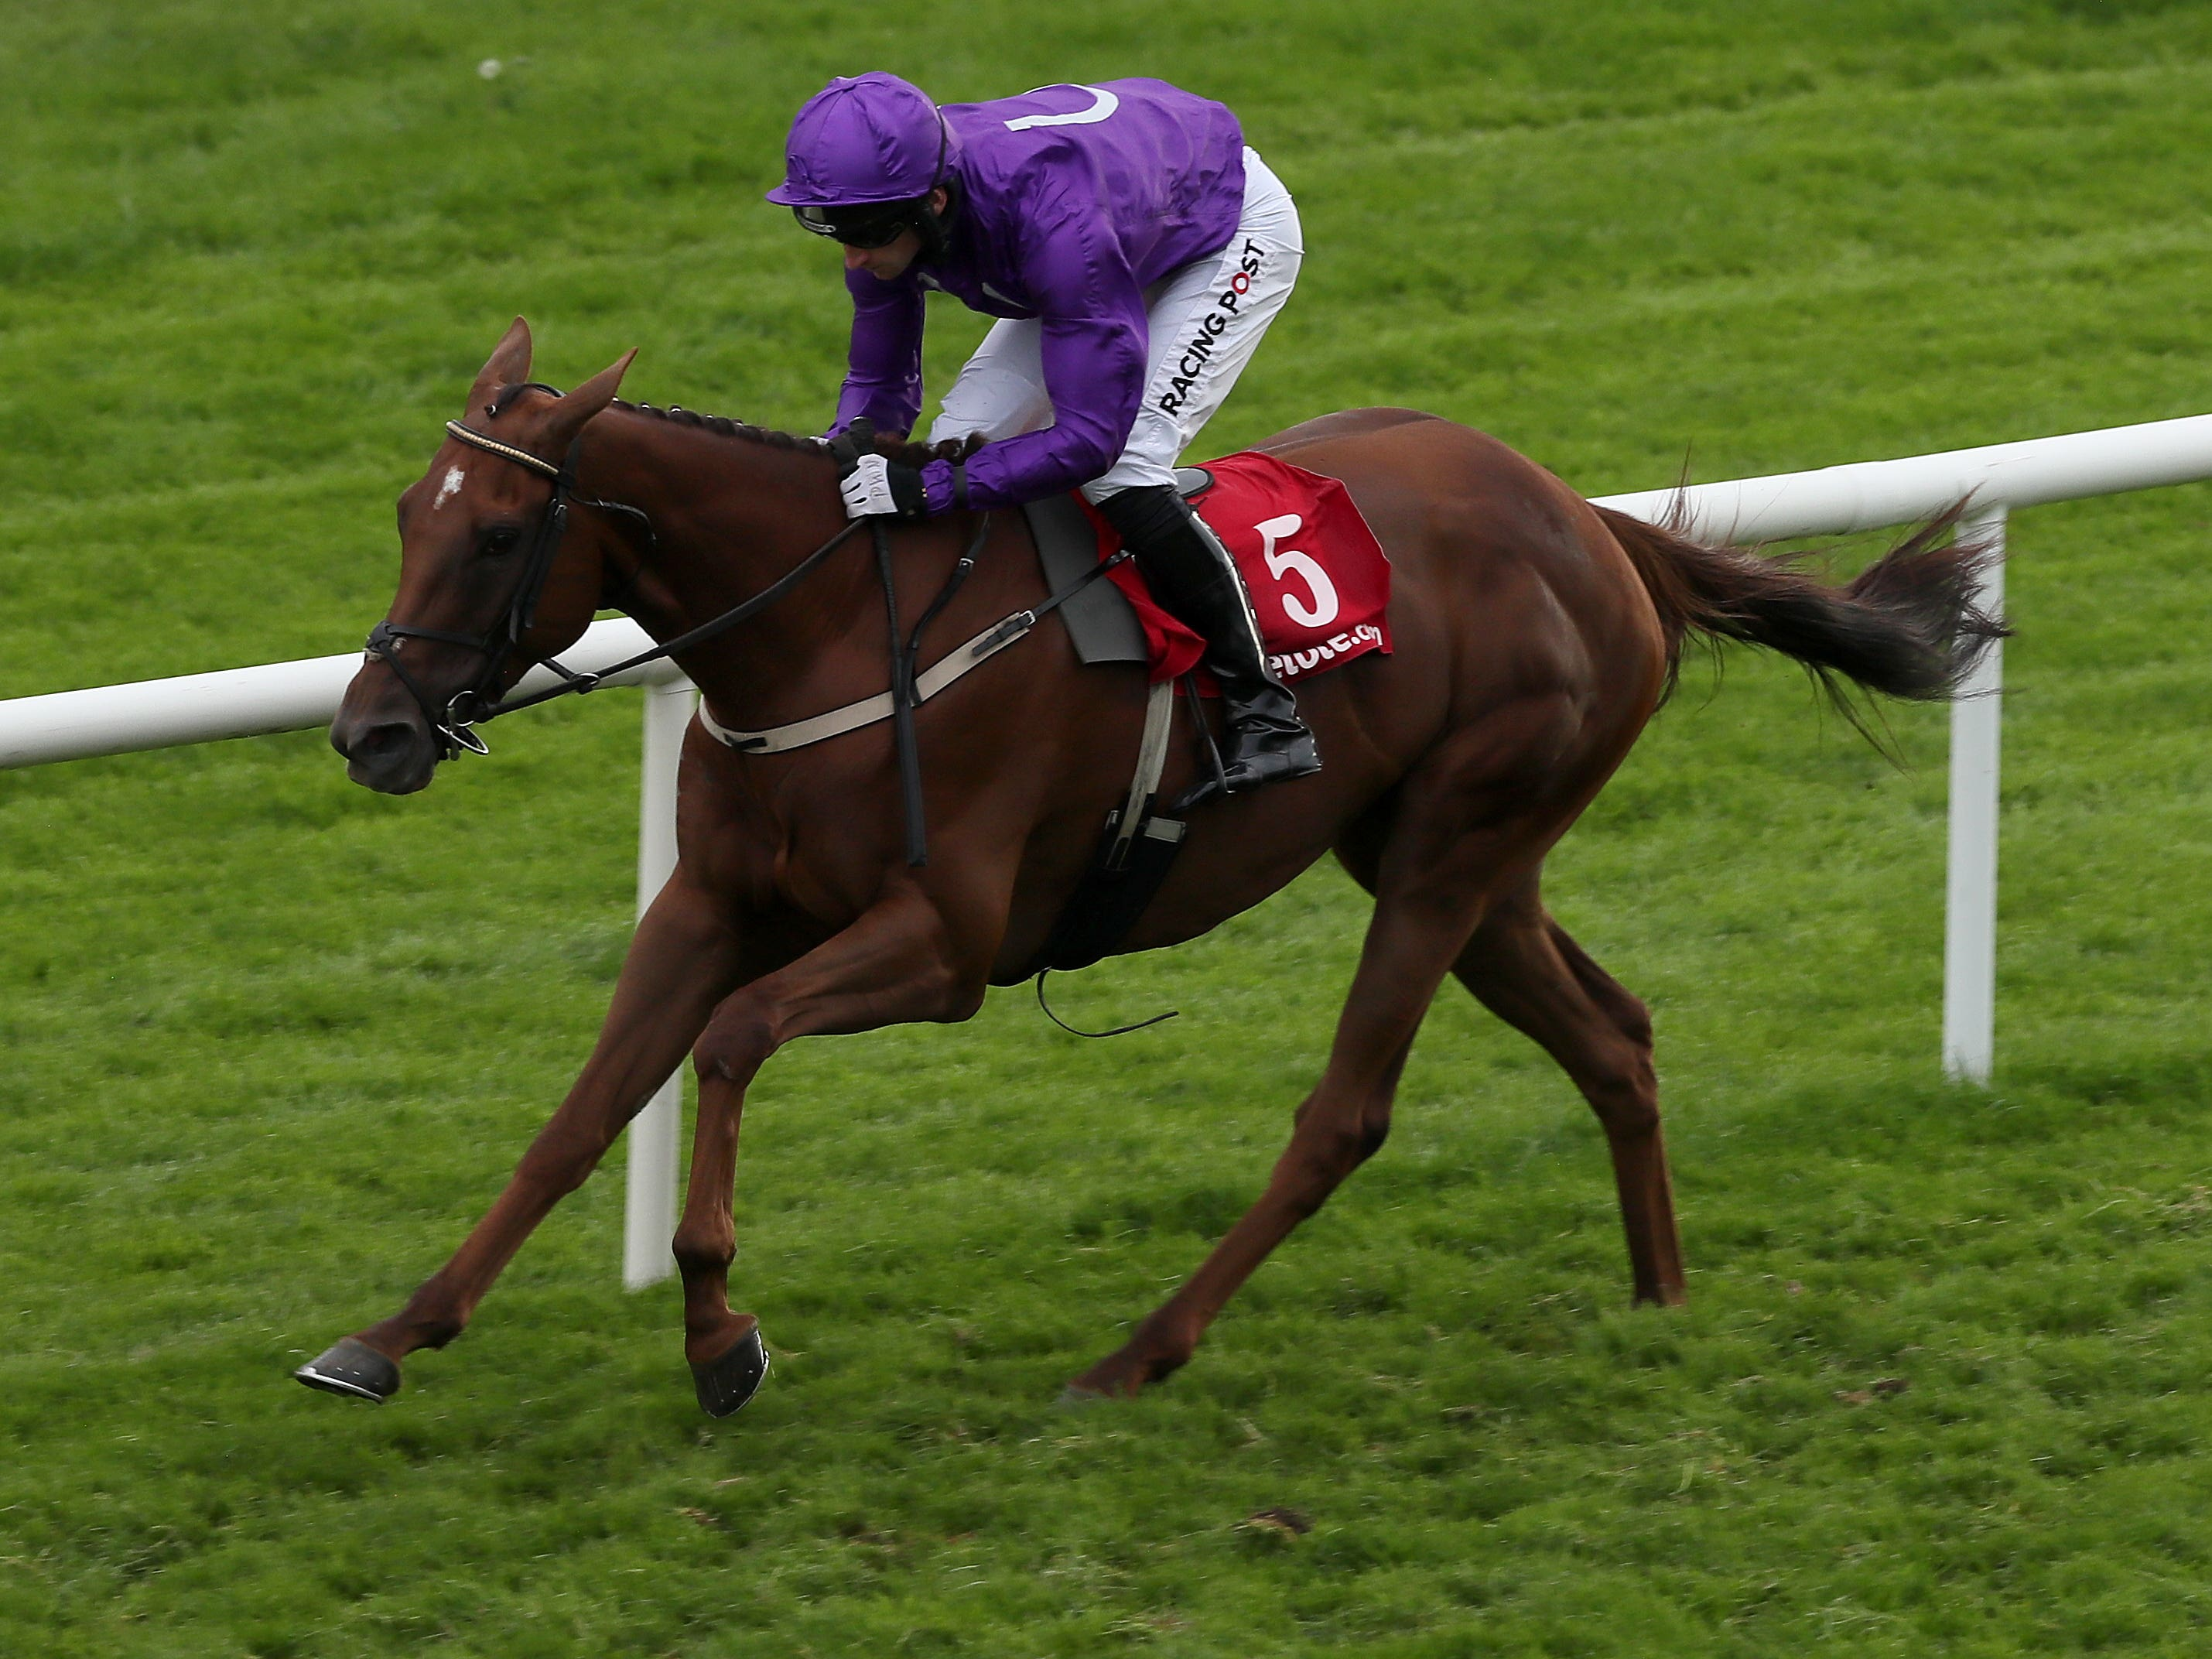 Buildmeupbuttercup will have the assistance of Frankie Dettori (Brian Lawless/PA)